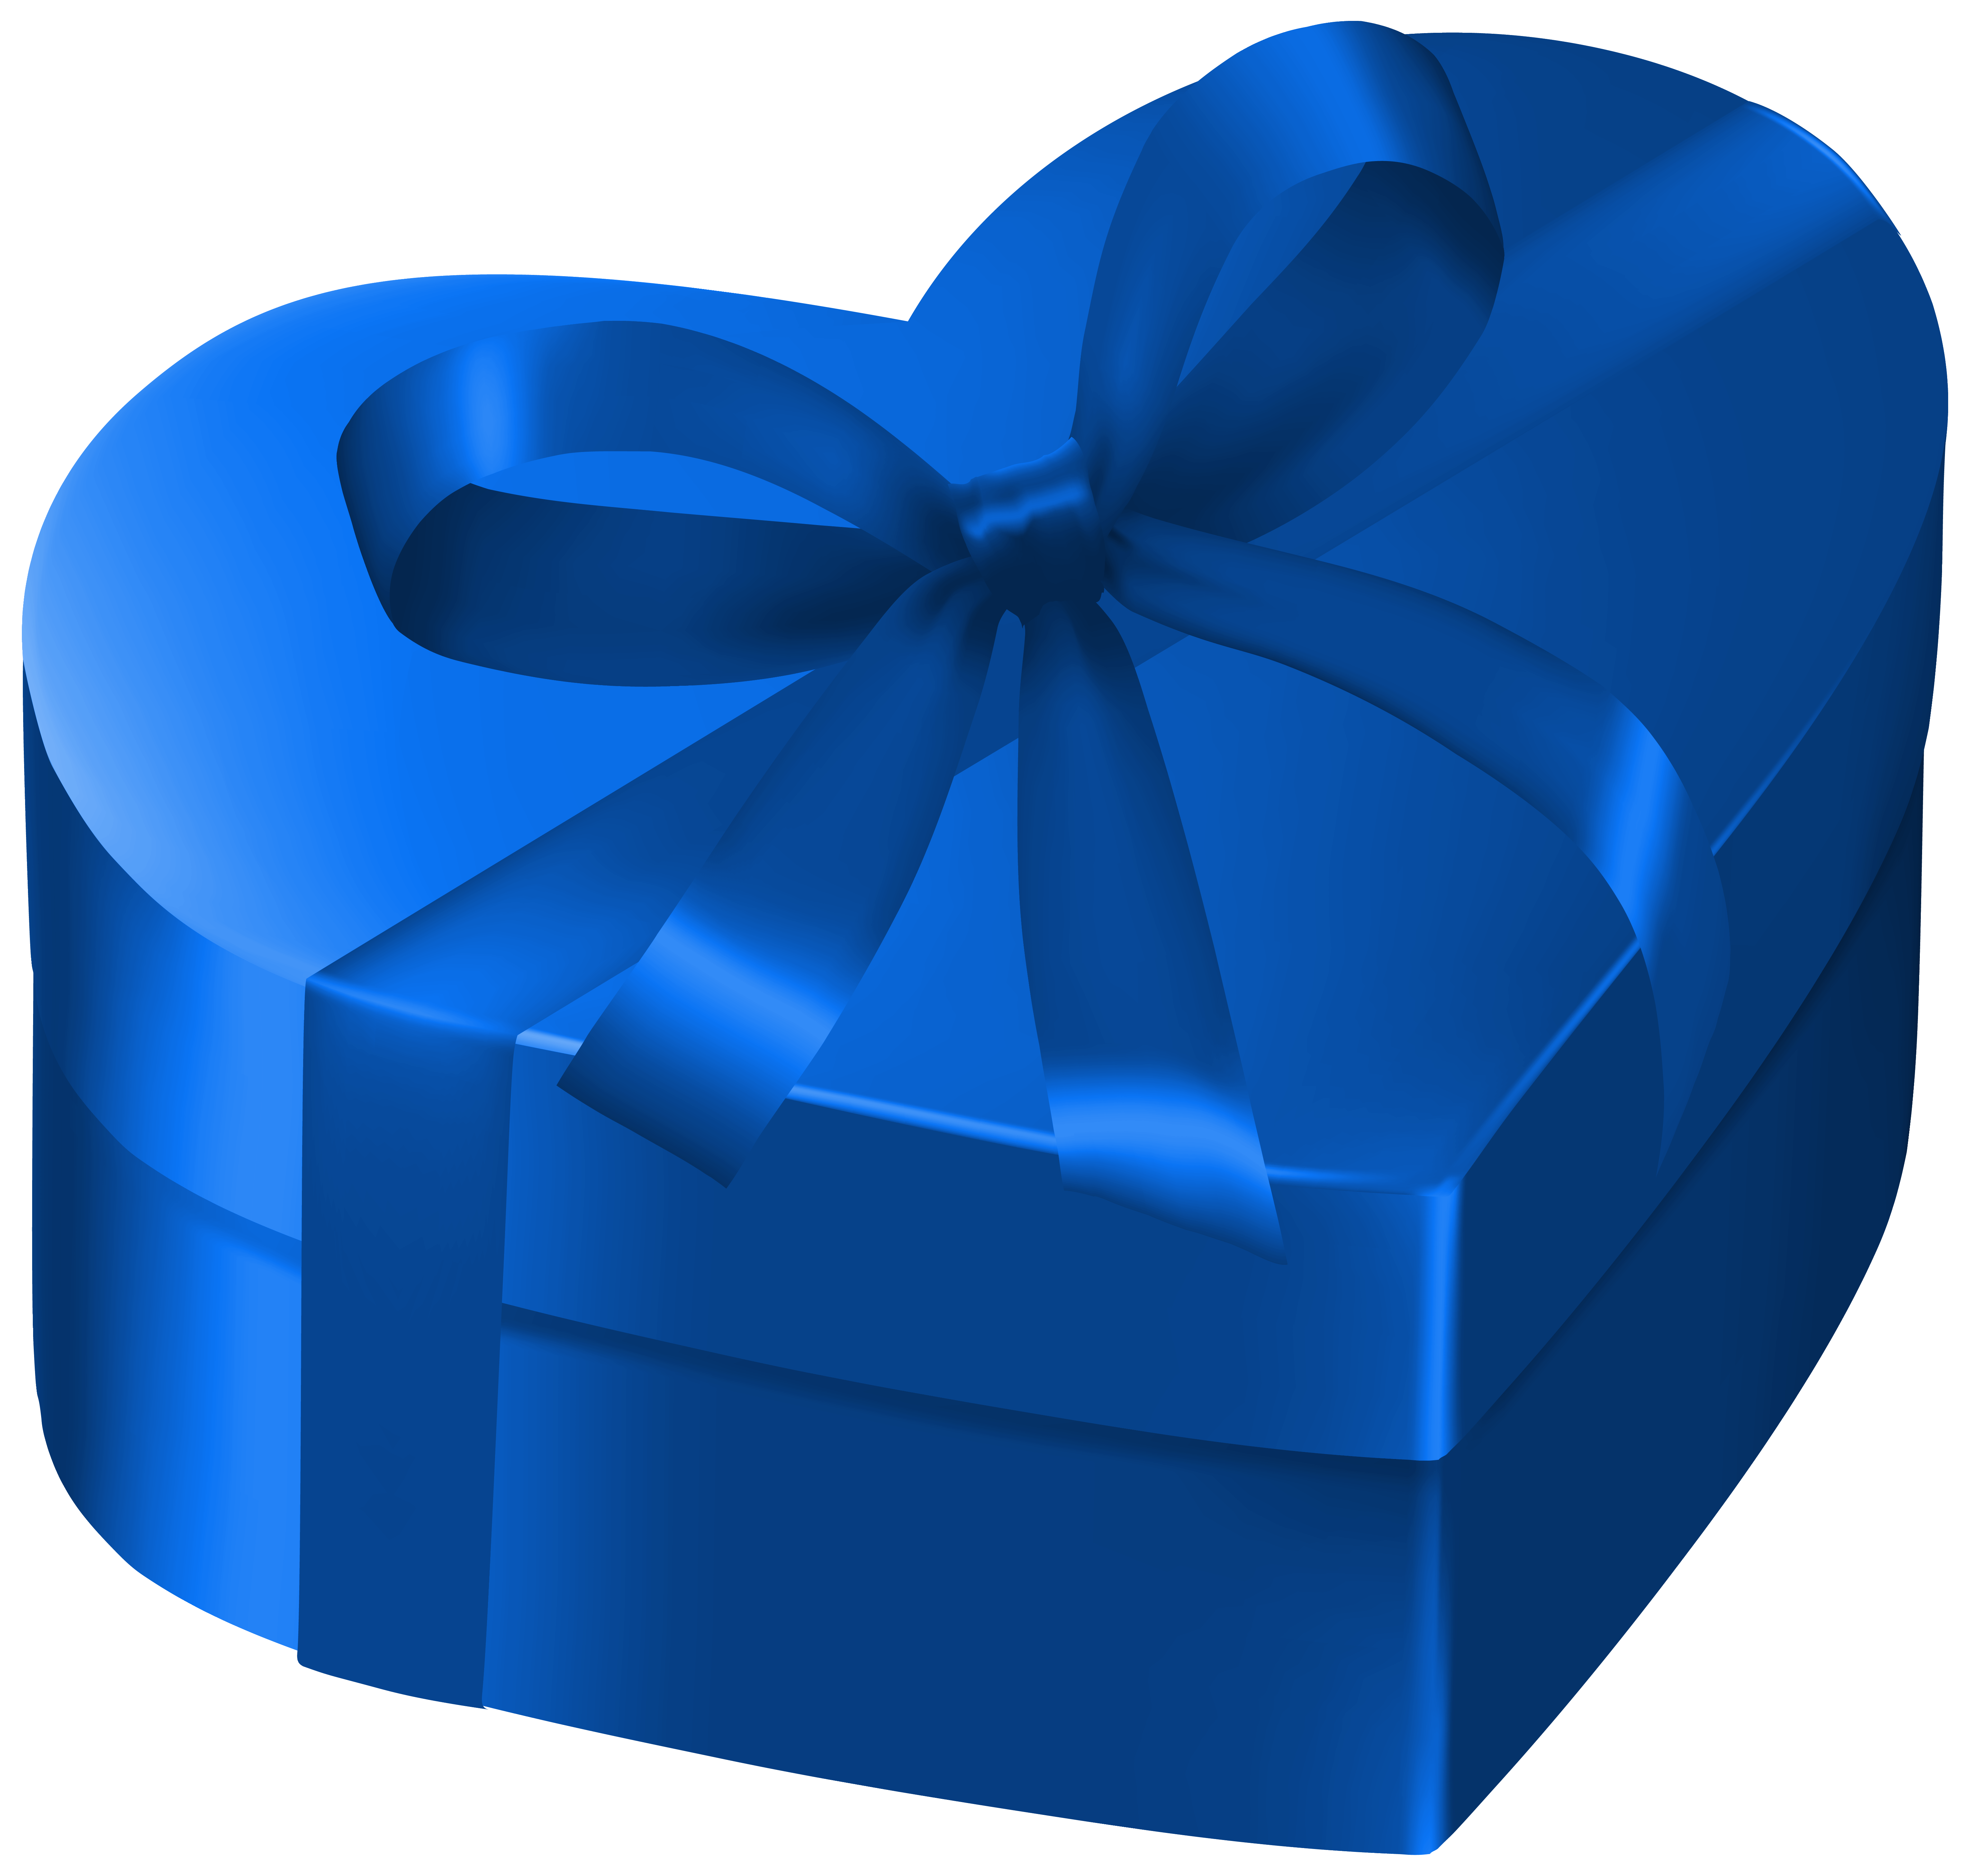 Blue box png image. Gift clipart heart gift